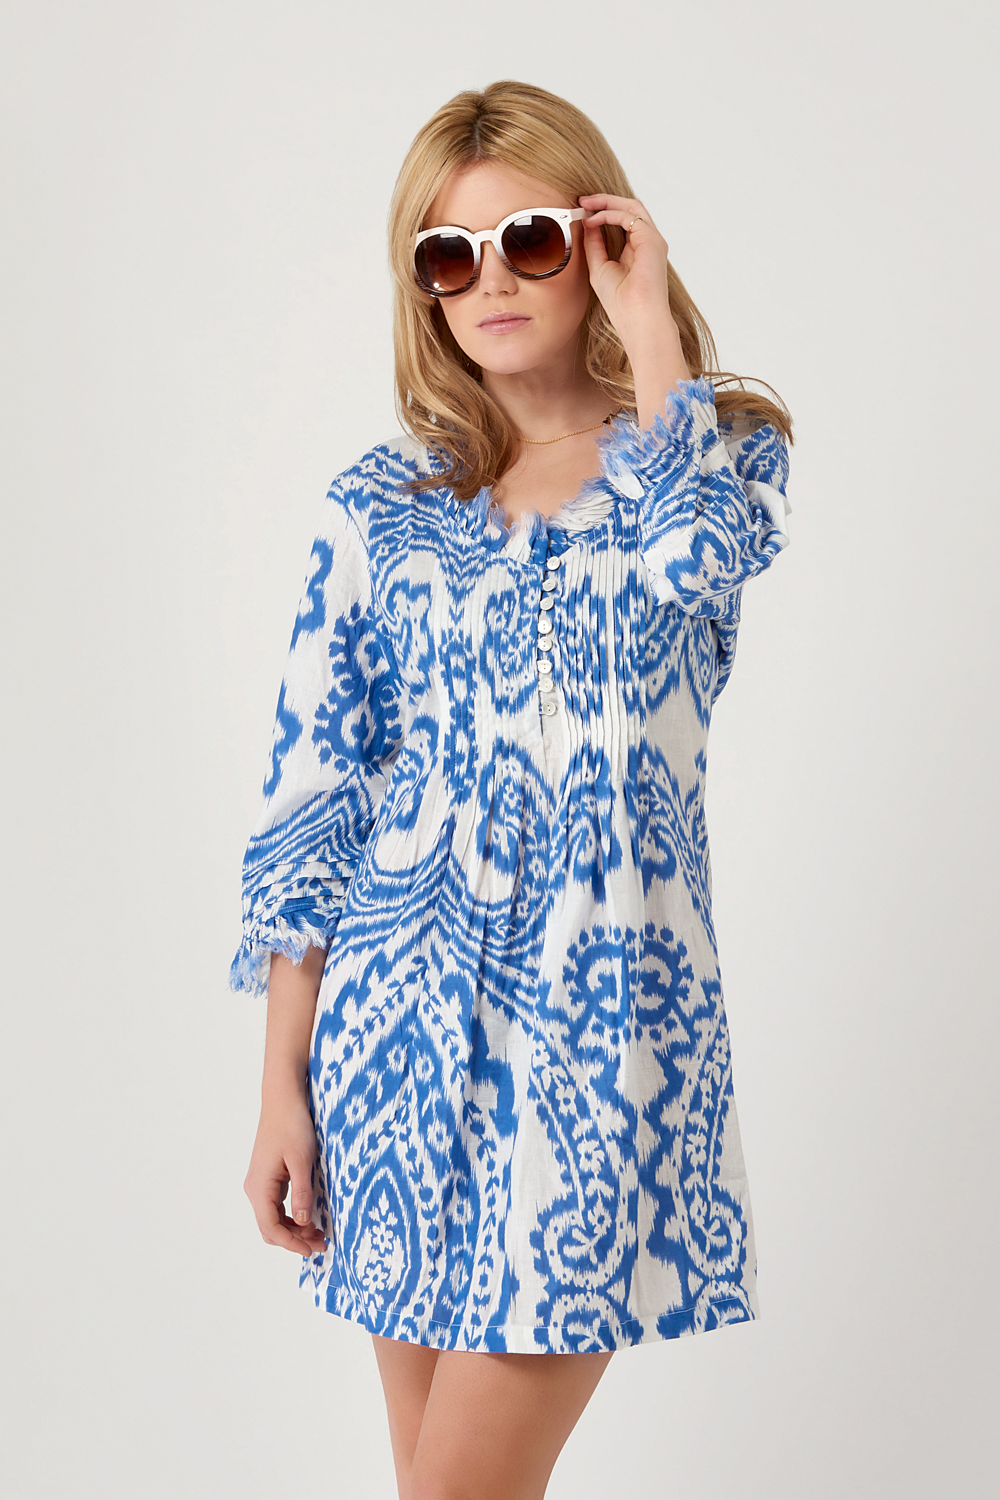 At Last Annabel - Blue Ikat